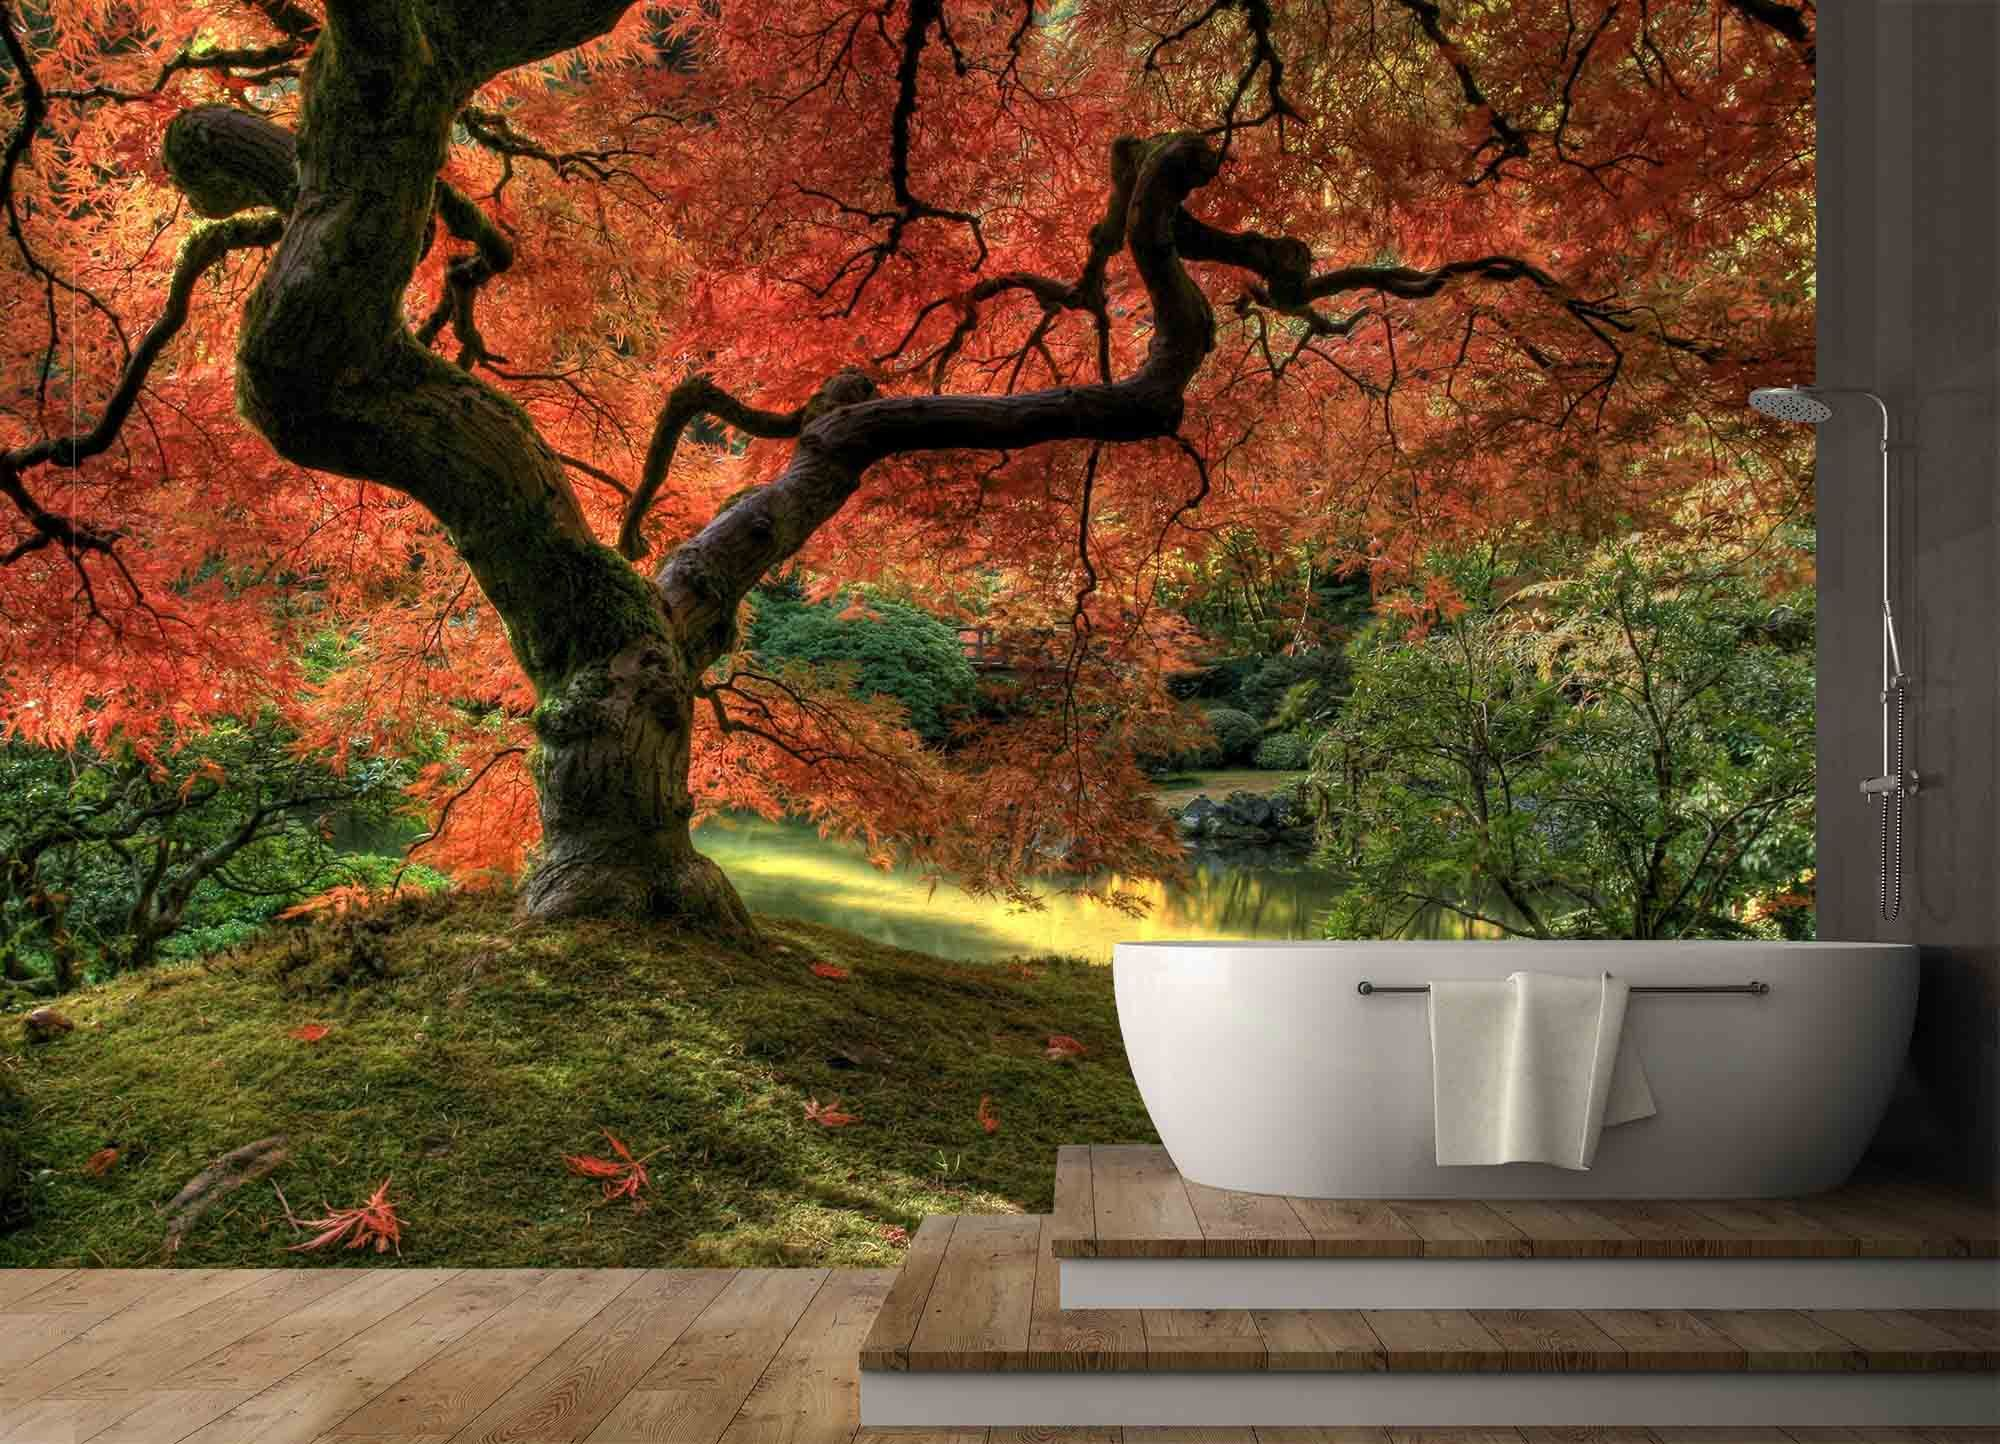 Rich In Vibrant Colors, This Japanese Garden Wall Mural Will